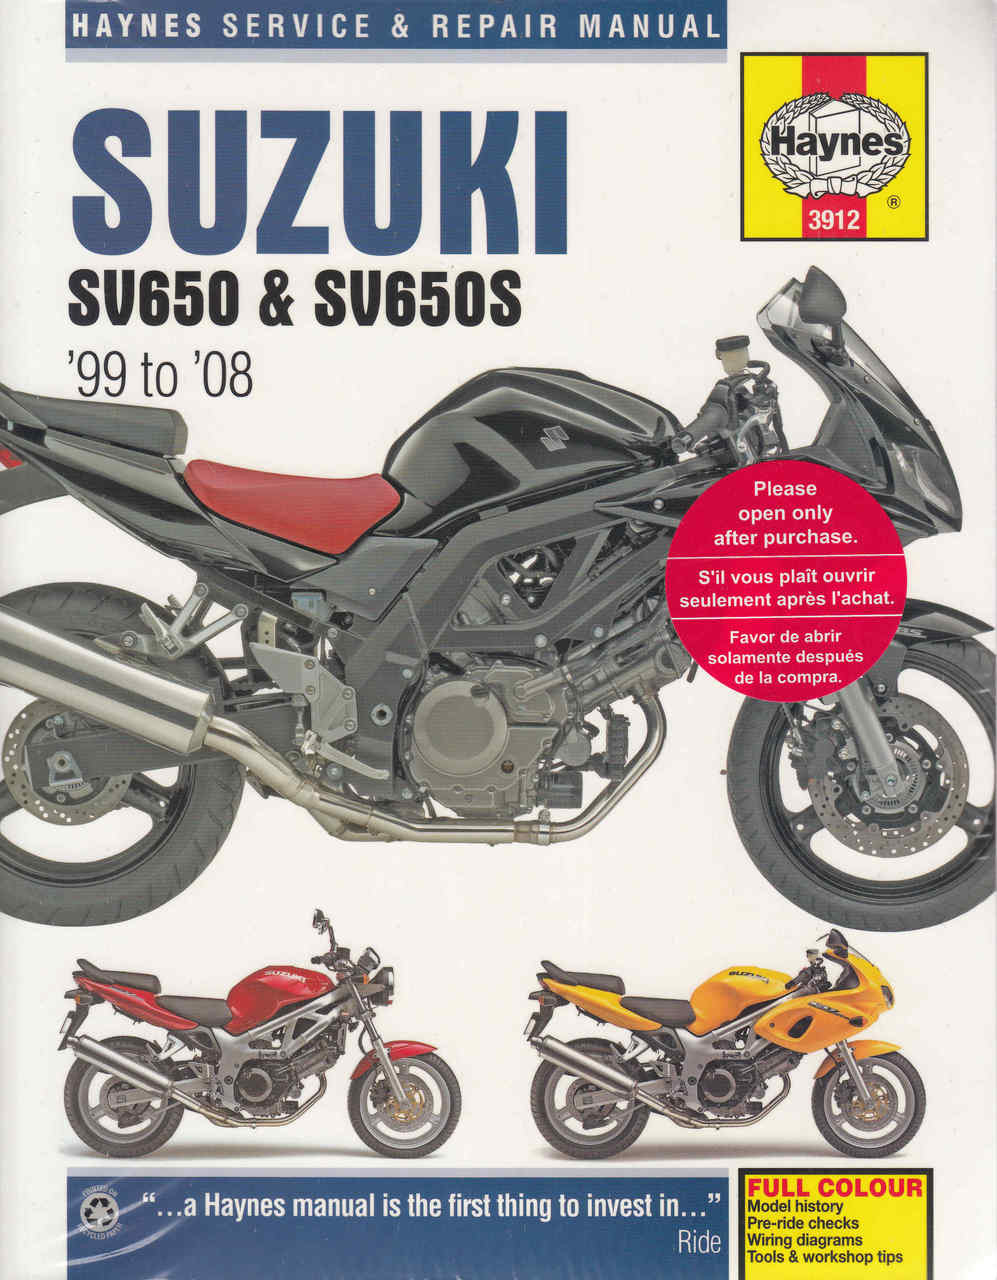 Suzuki SV650, SV650S 1999 - 2008 Workshop Manual ( 9781785210419) ...